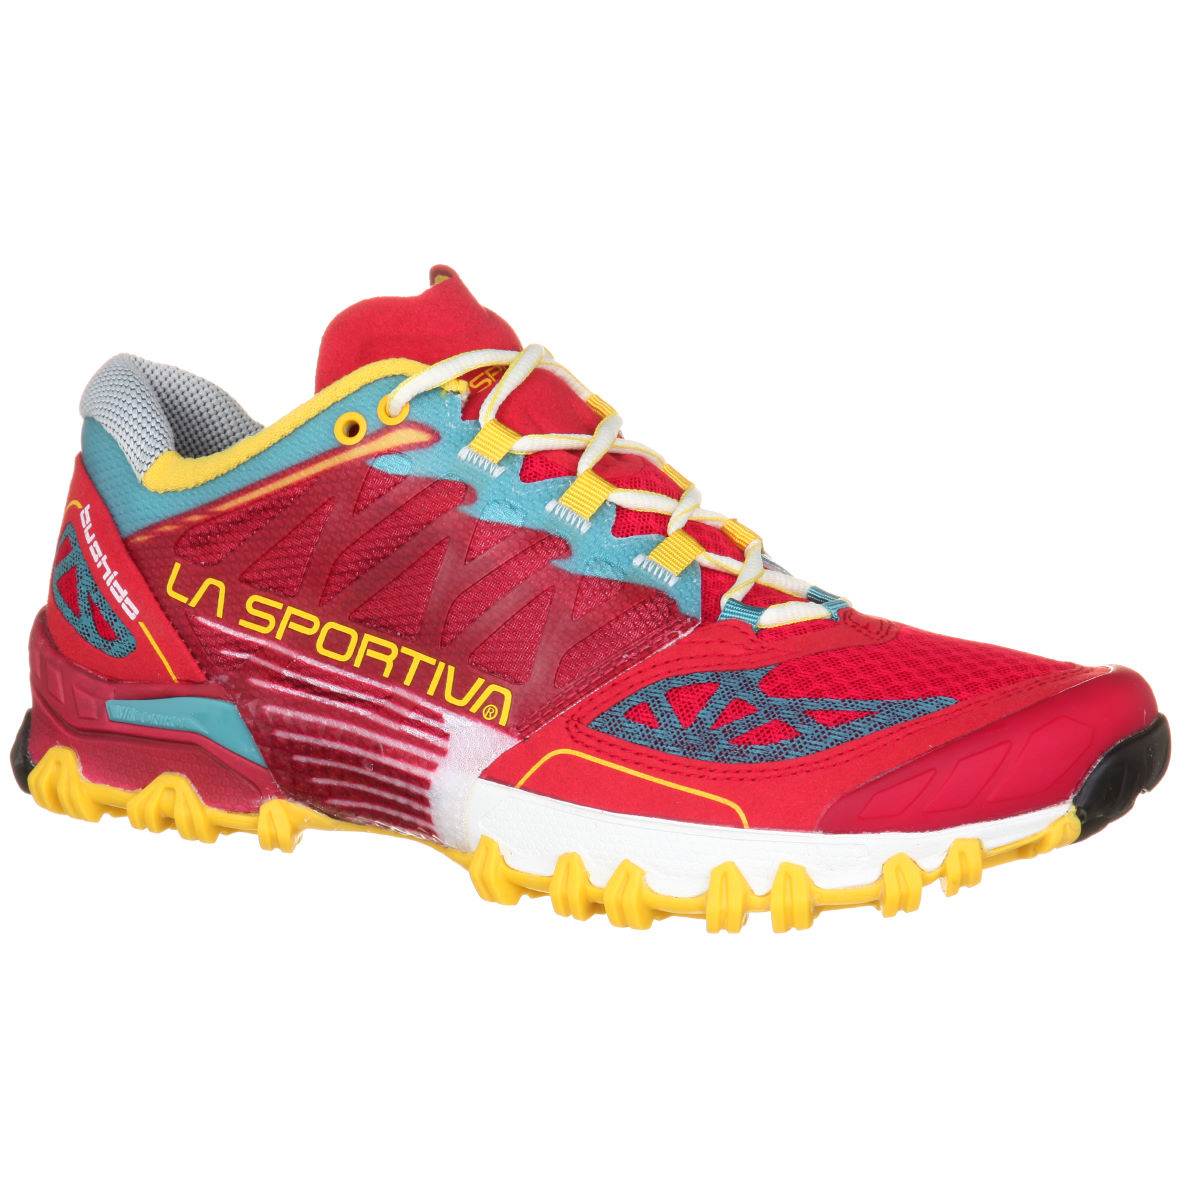 Chaussures Femme La Sportiva Bushido (AH16) - 5 UK Berry Red